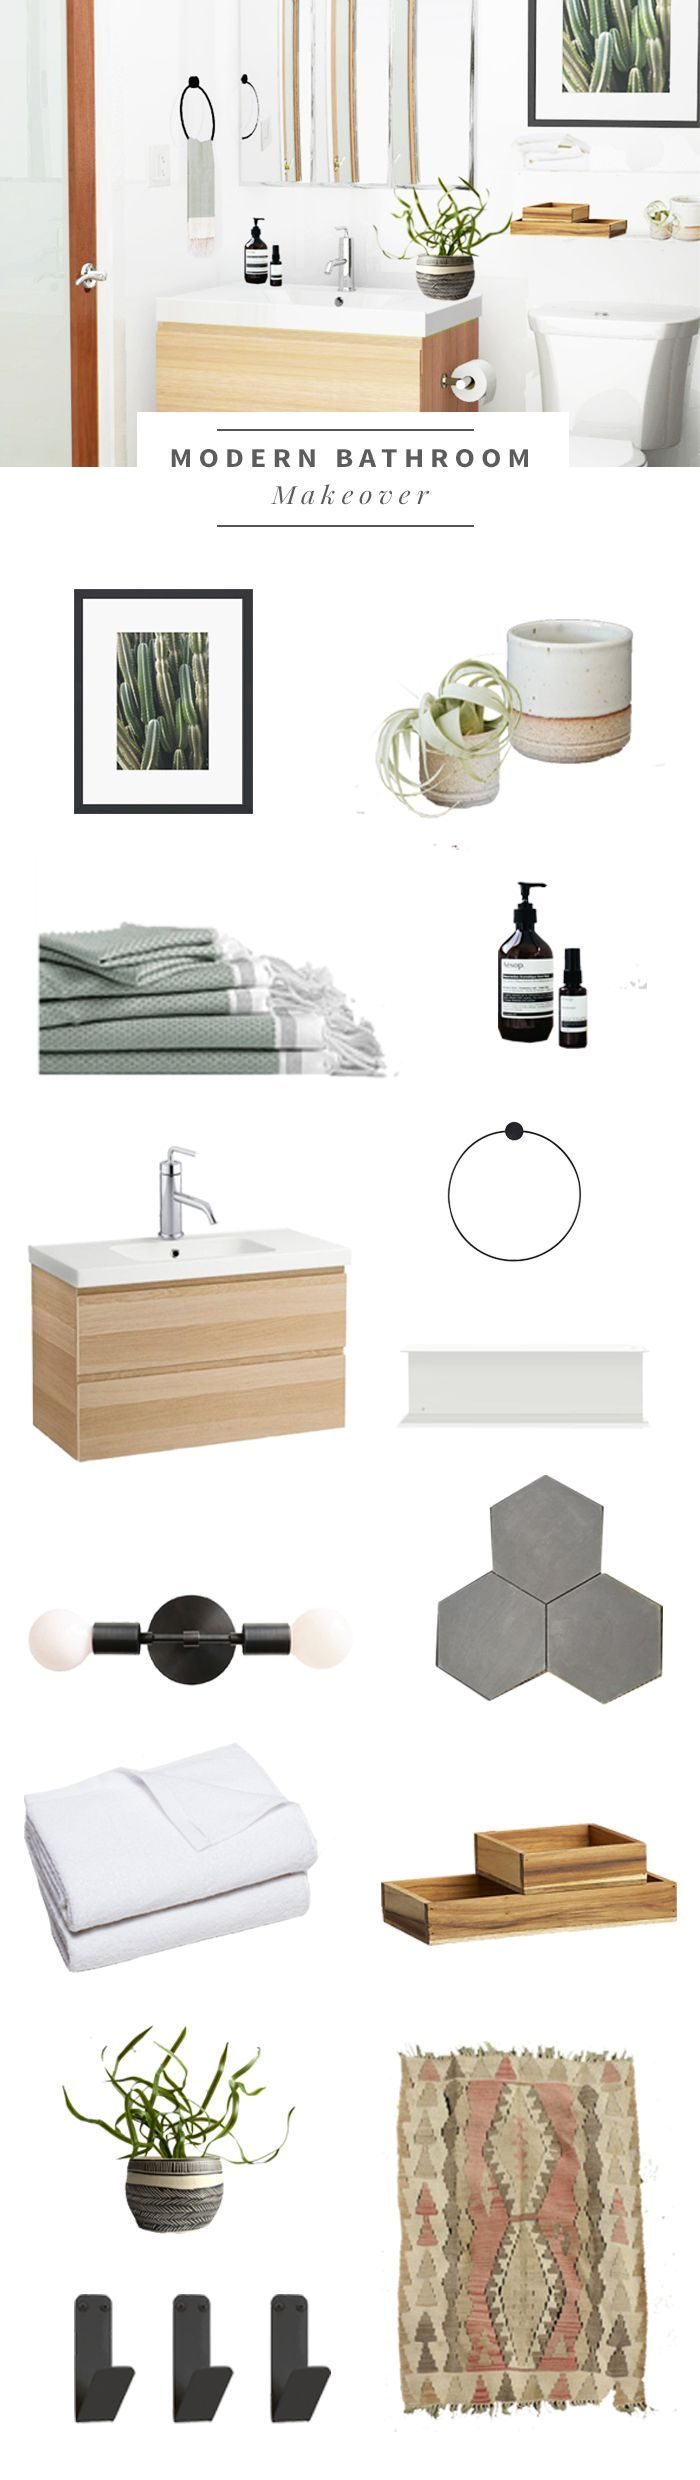 Our home: Making over the master bath - Hither & Thither